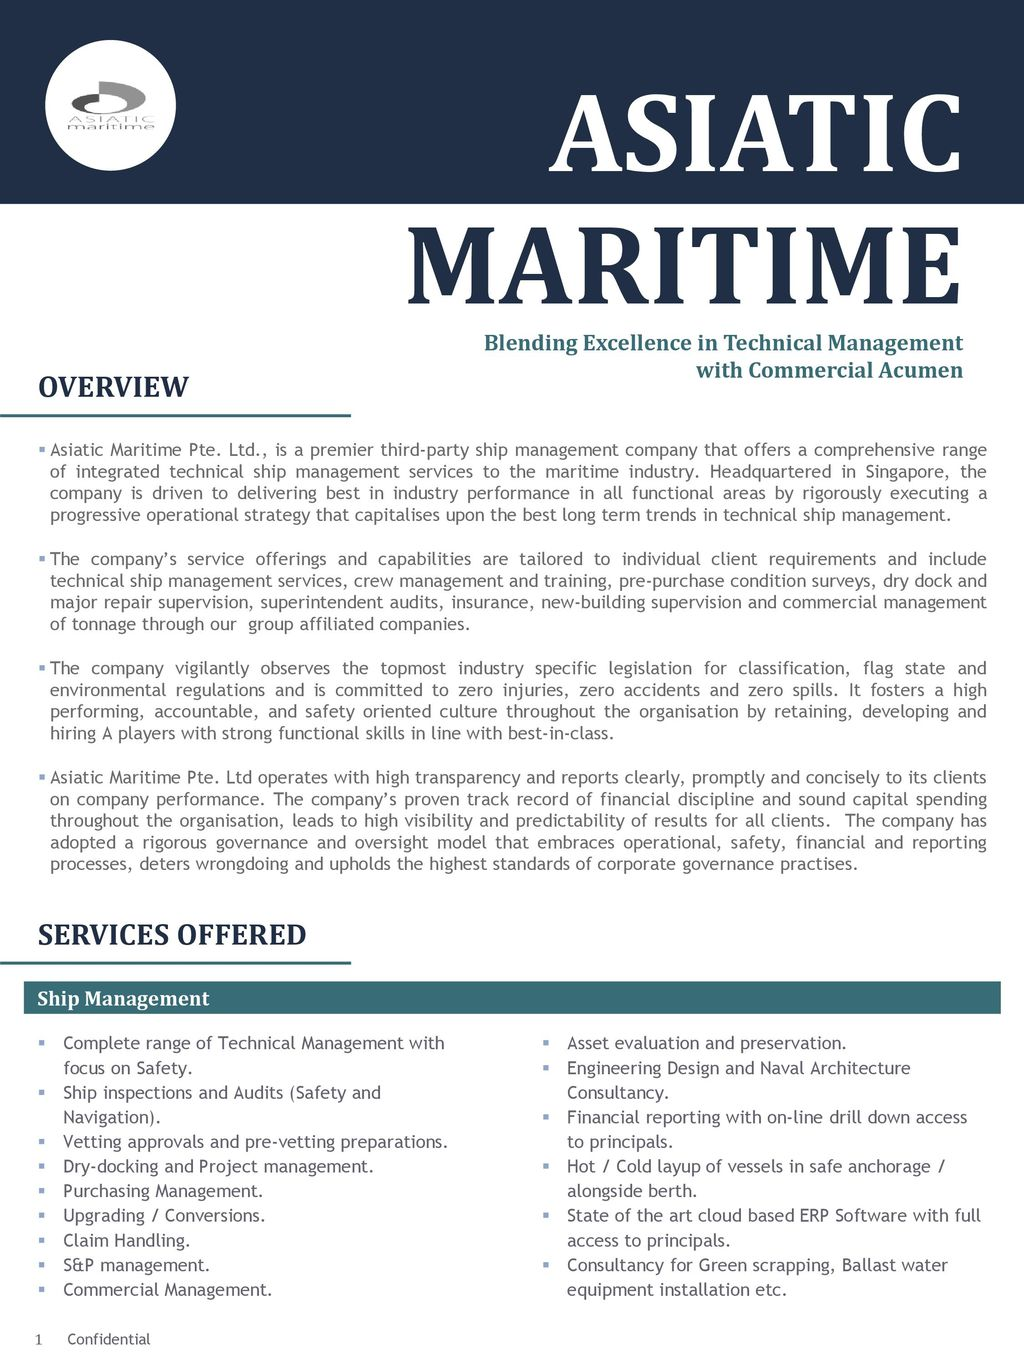 ASIATIC MARITIME OVERVIEW SERVICES OFFERED - ppt download